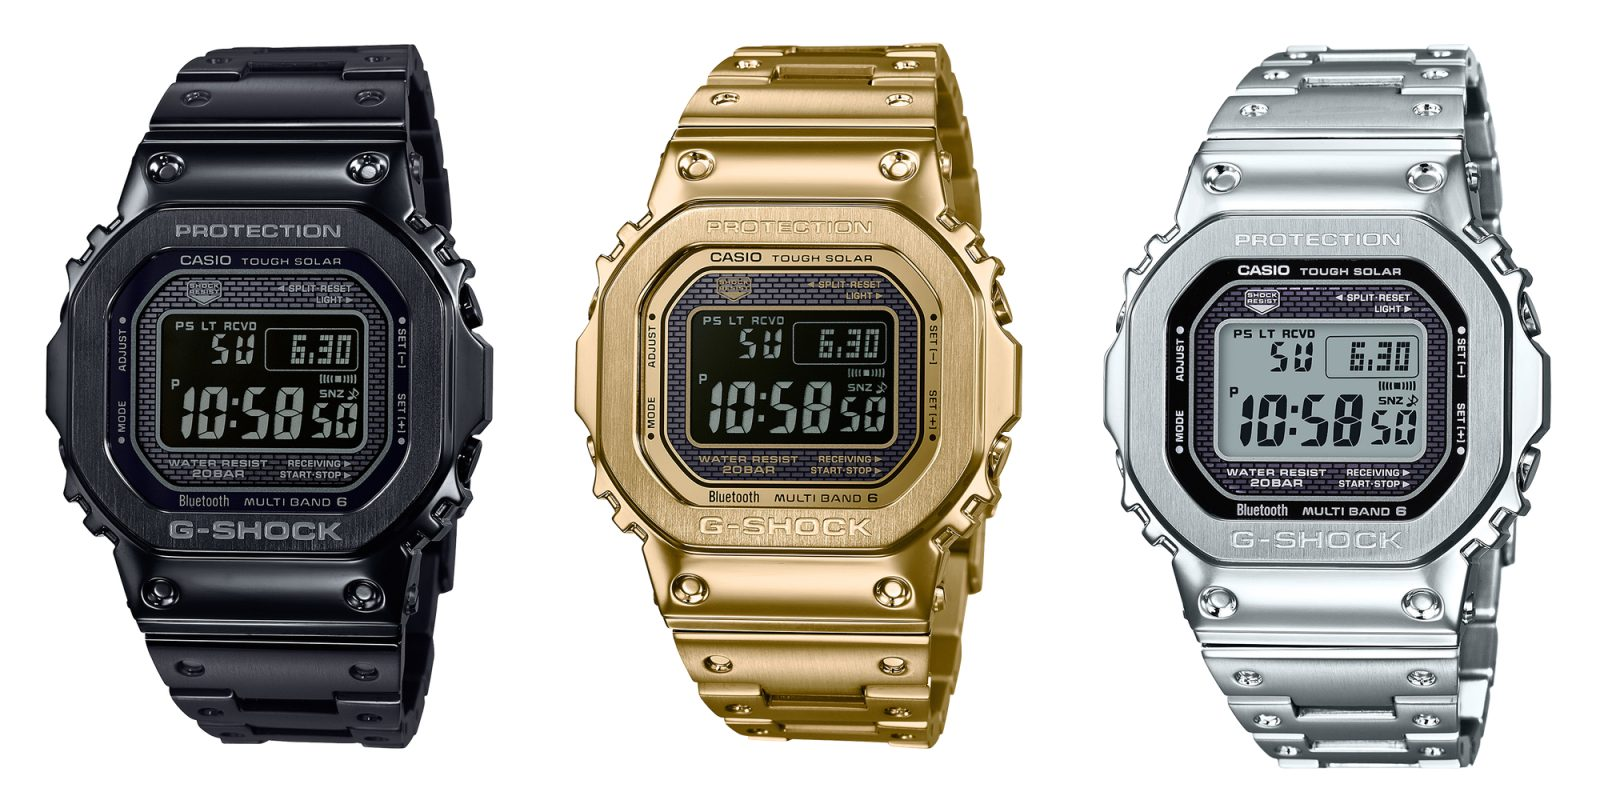 bdec36b4a48 Casio s latest release is a full-metal G-Shock watch with retro-inspired  design cues